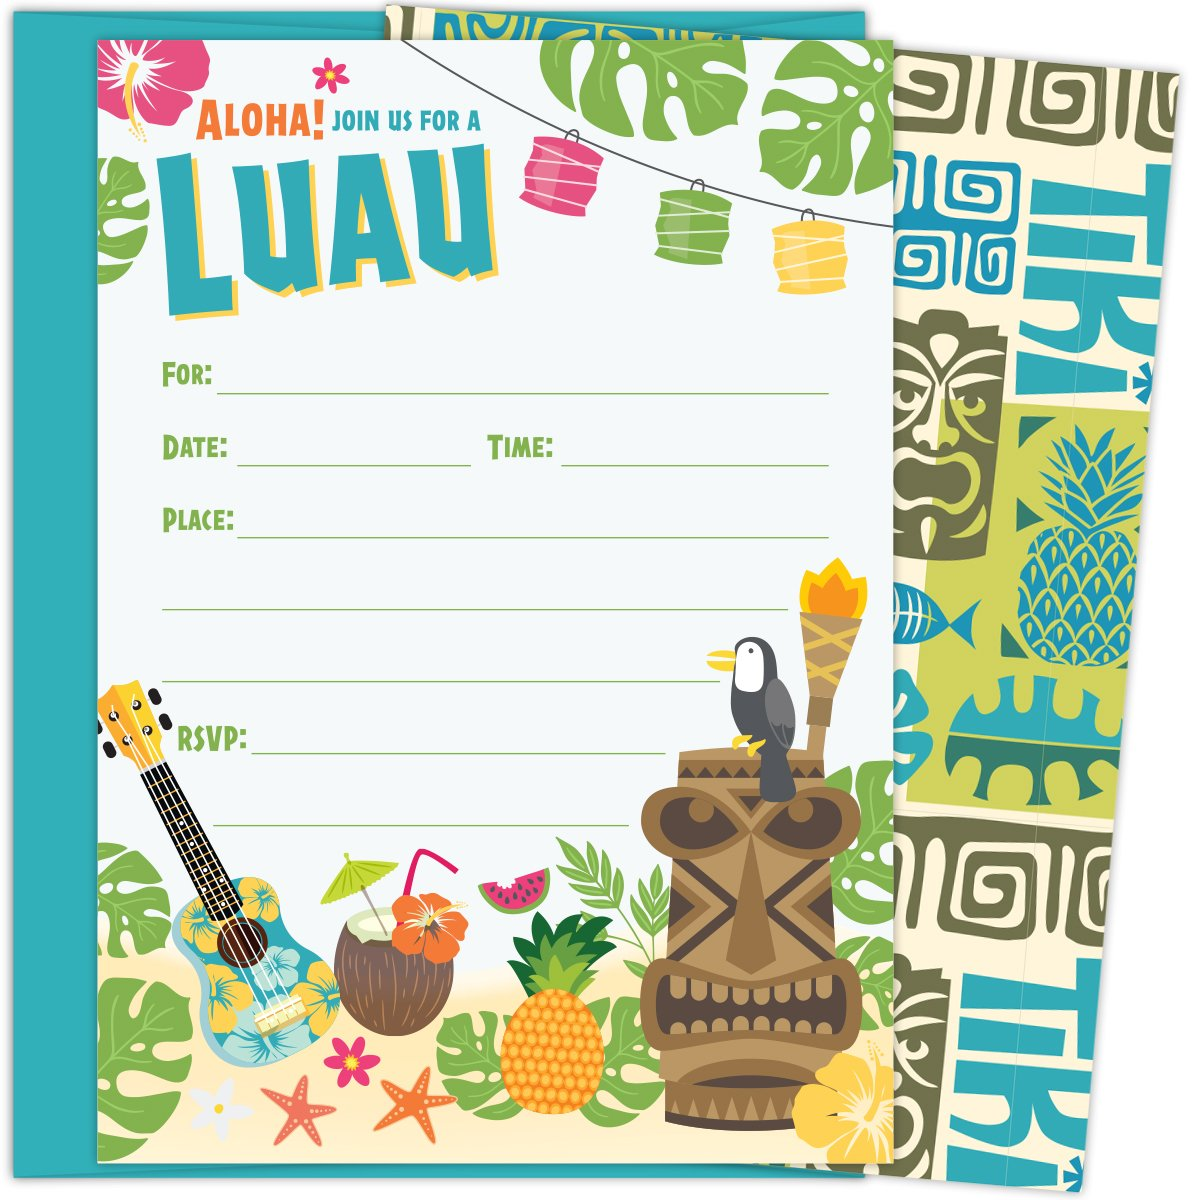 Luau Party Invitations with Aqua Blue Envelopes for Birthdays, Bridal Showers, Baby Showers, Summer Parties, Rehearsal Dinners and Bachelorette Parties. Set of 25 Fill-in invitations and Envelopes by Koko Paper Co